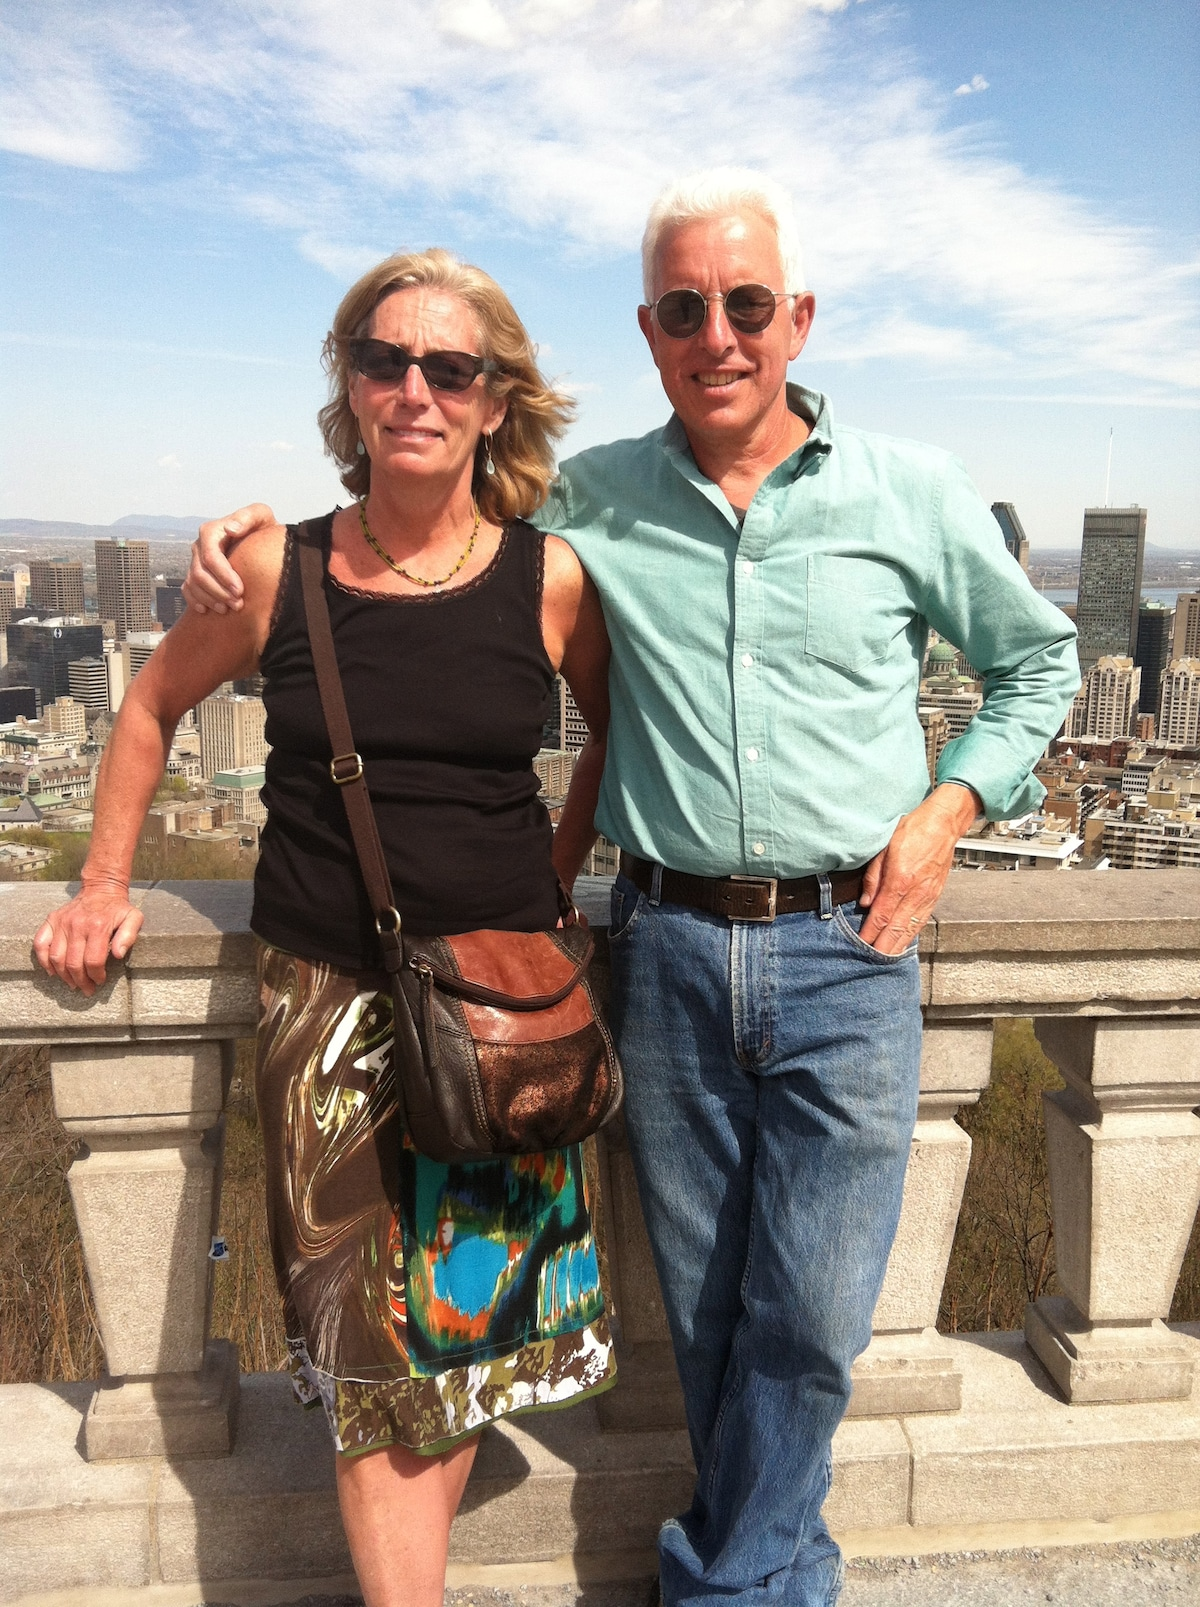 Deb And John From Vermont, United States